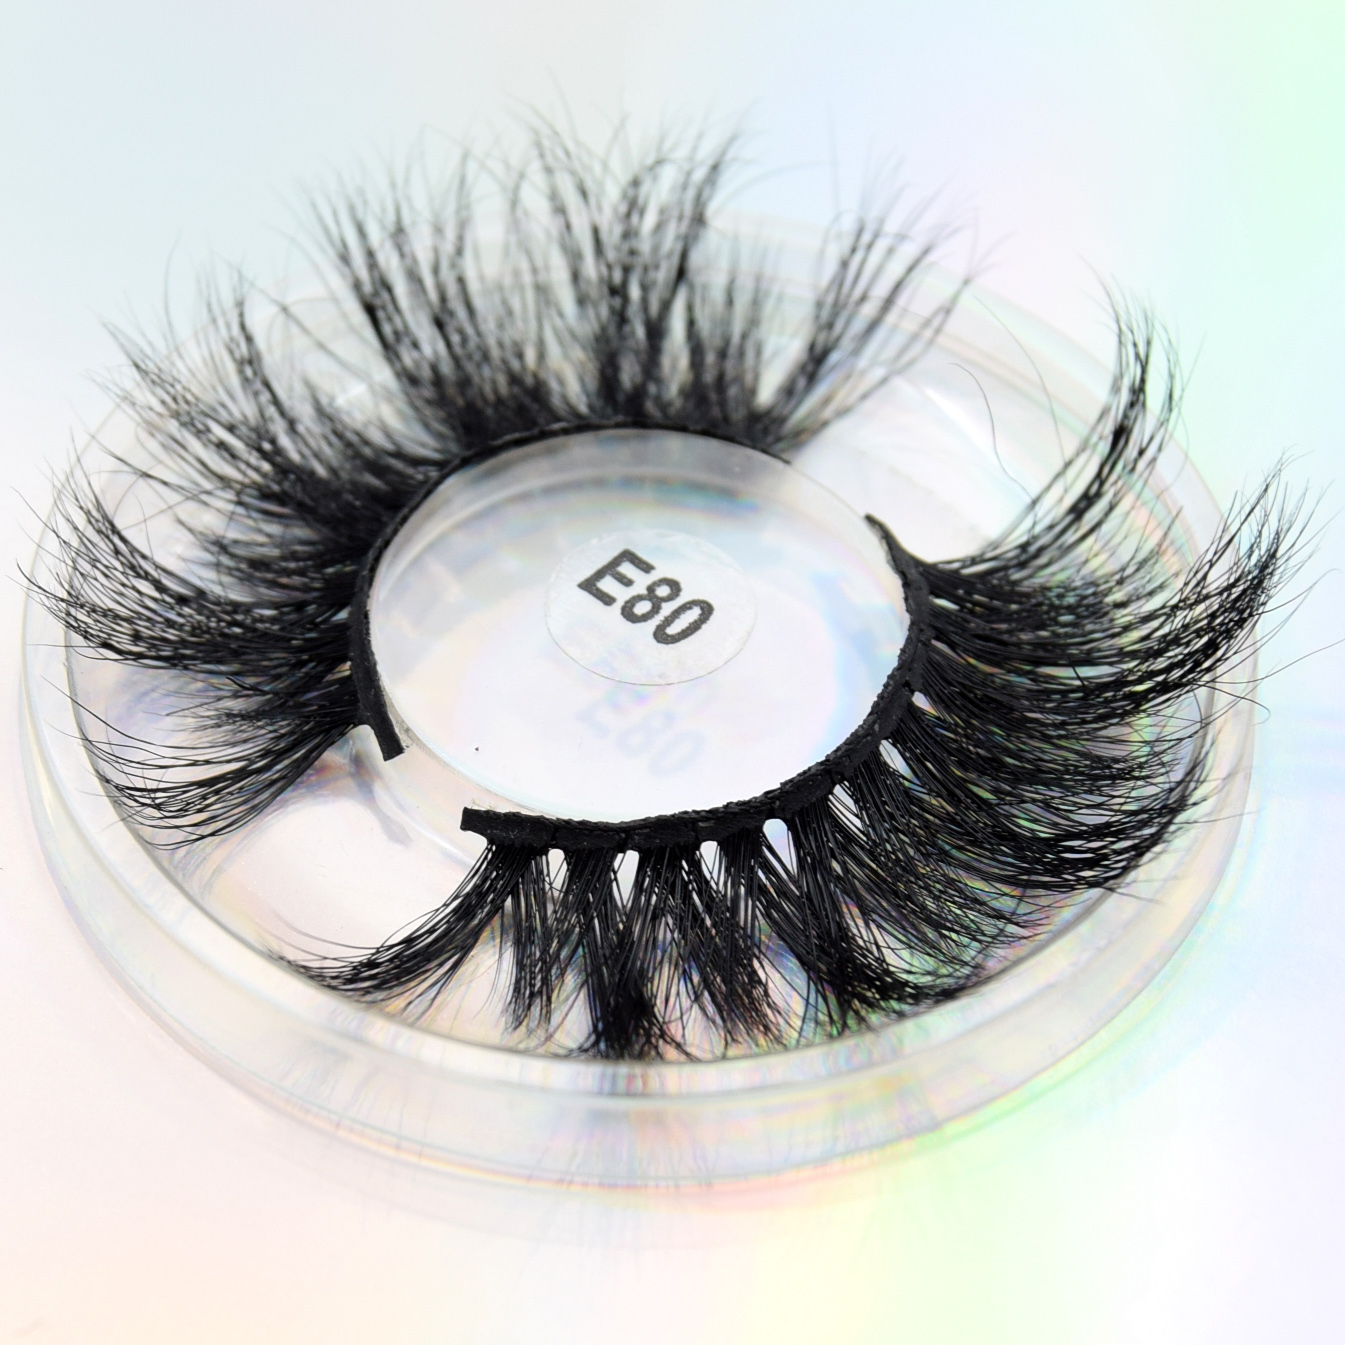 Visofree 3D Eyelashes 25mm Lashes Dramatic Volume Eyelashes Crisscross False Eyelashes Cruelty Free Real Mink Eyelashes Makeup